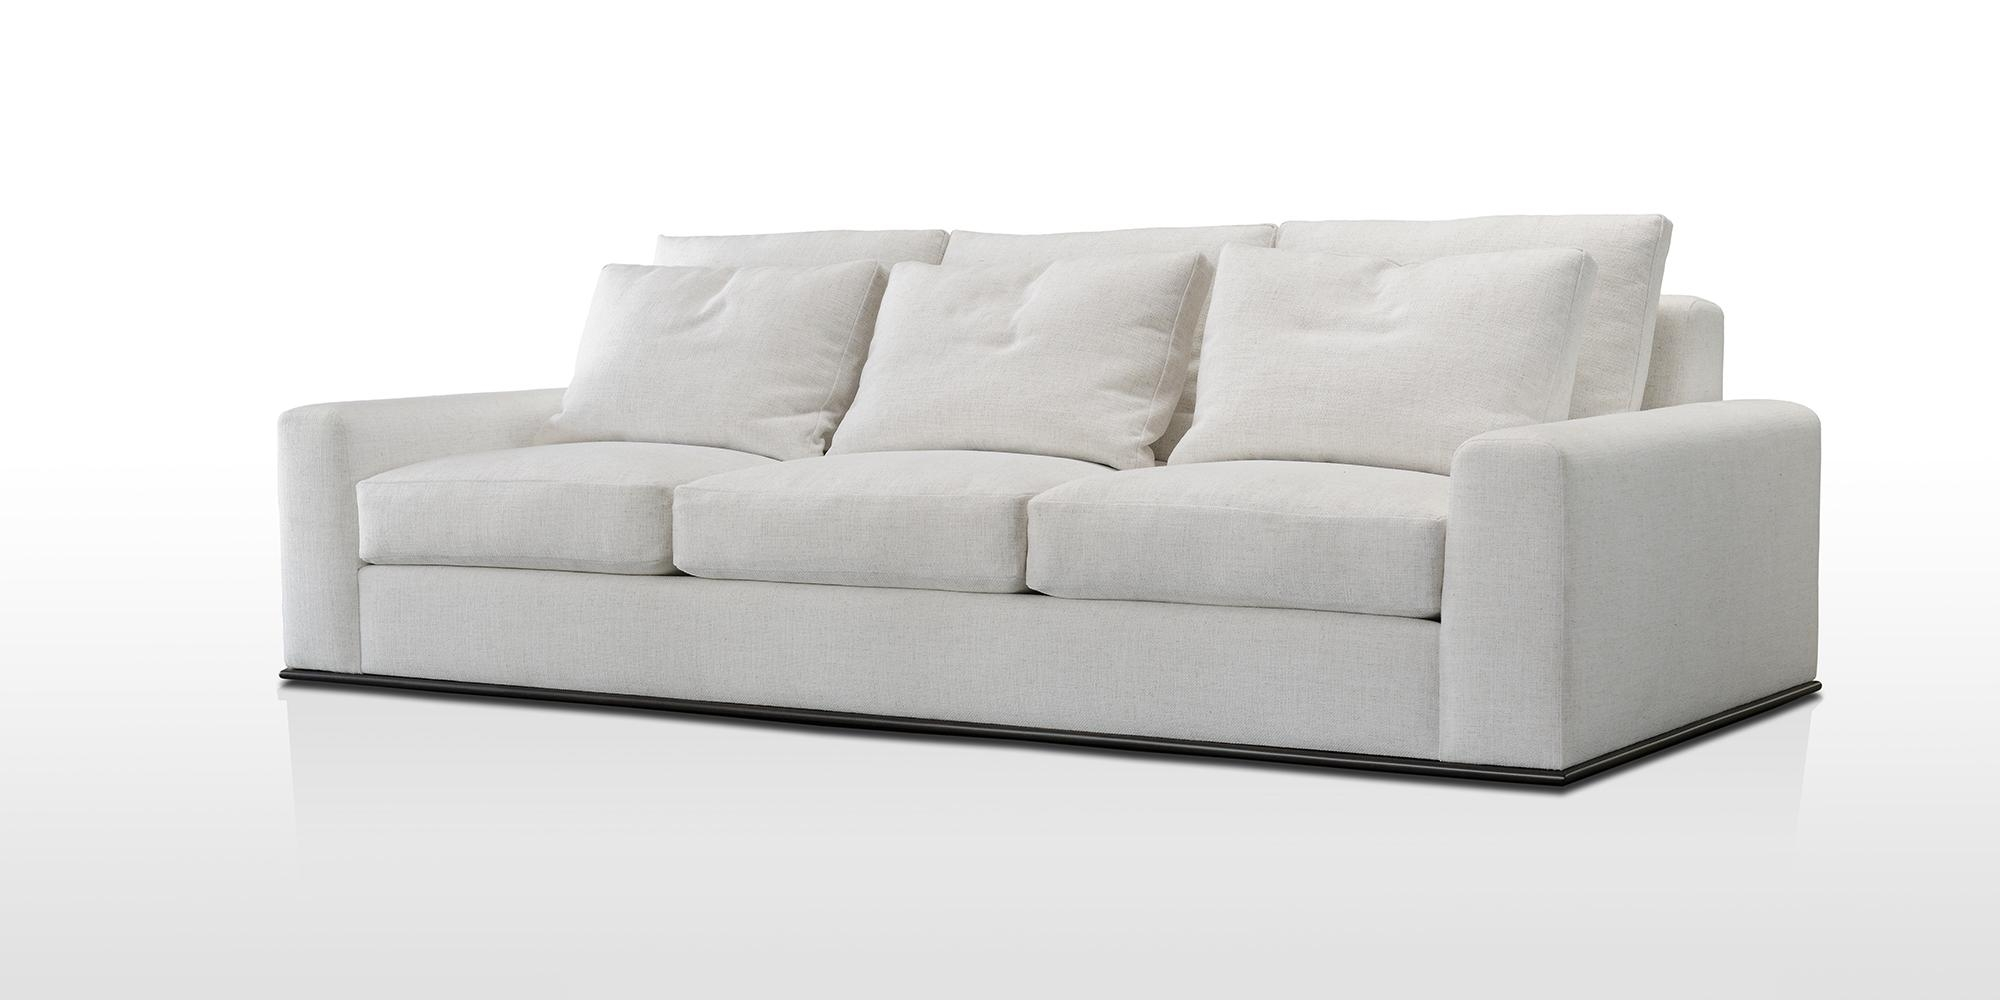 Featured Image of Nathan Anthony Sofas